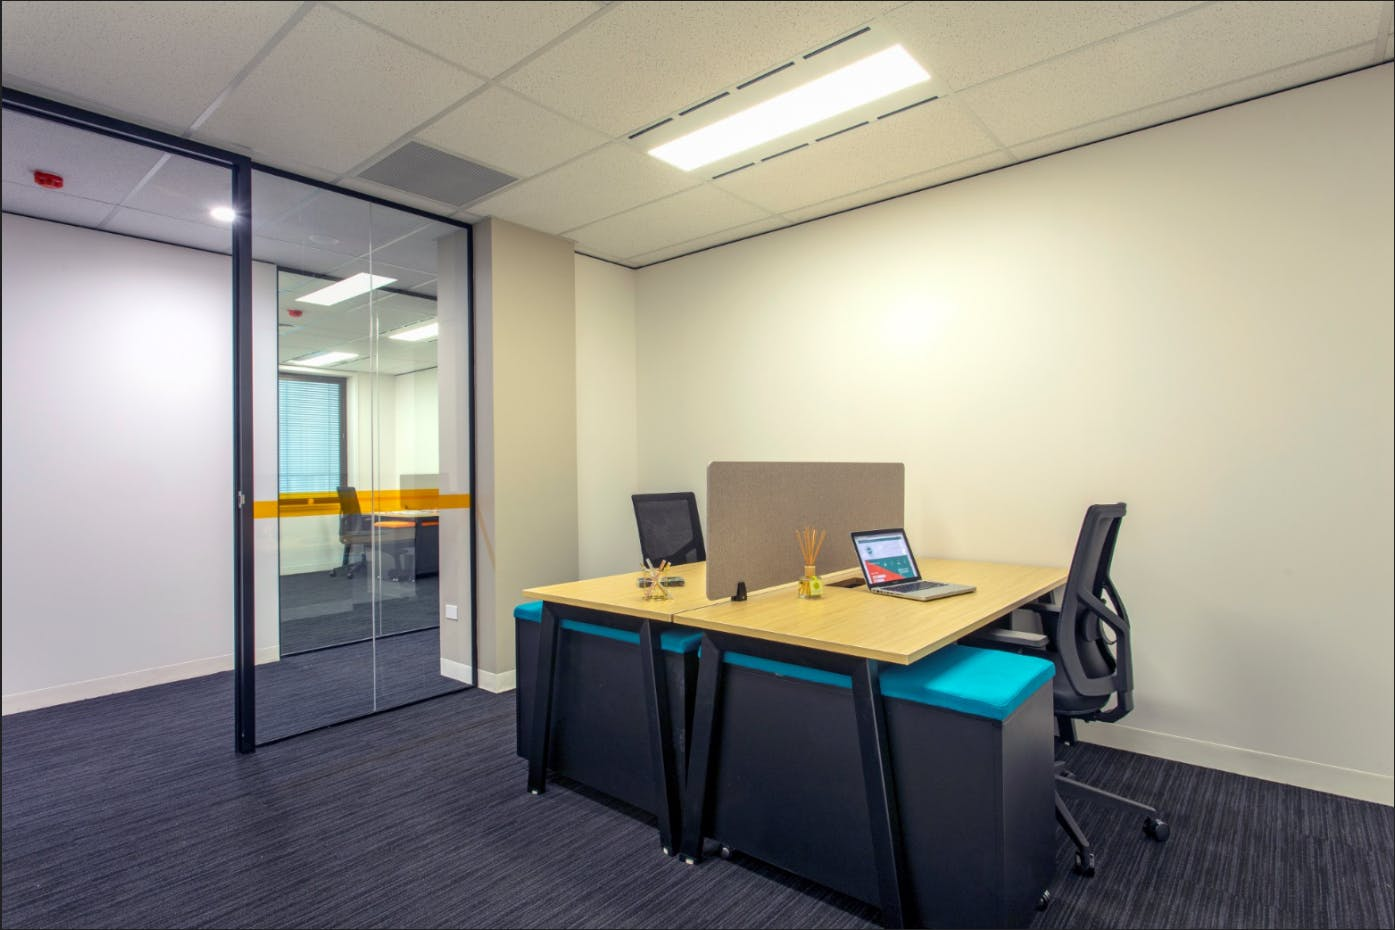 Suite 10, serviced office at Spot Co-Working, image 1